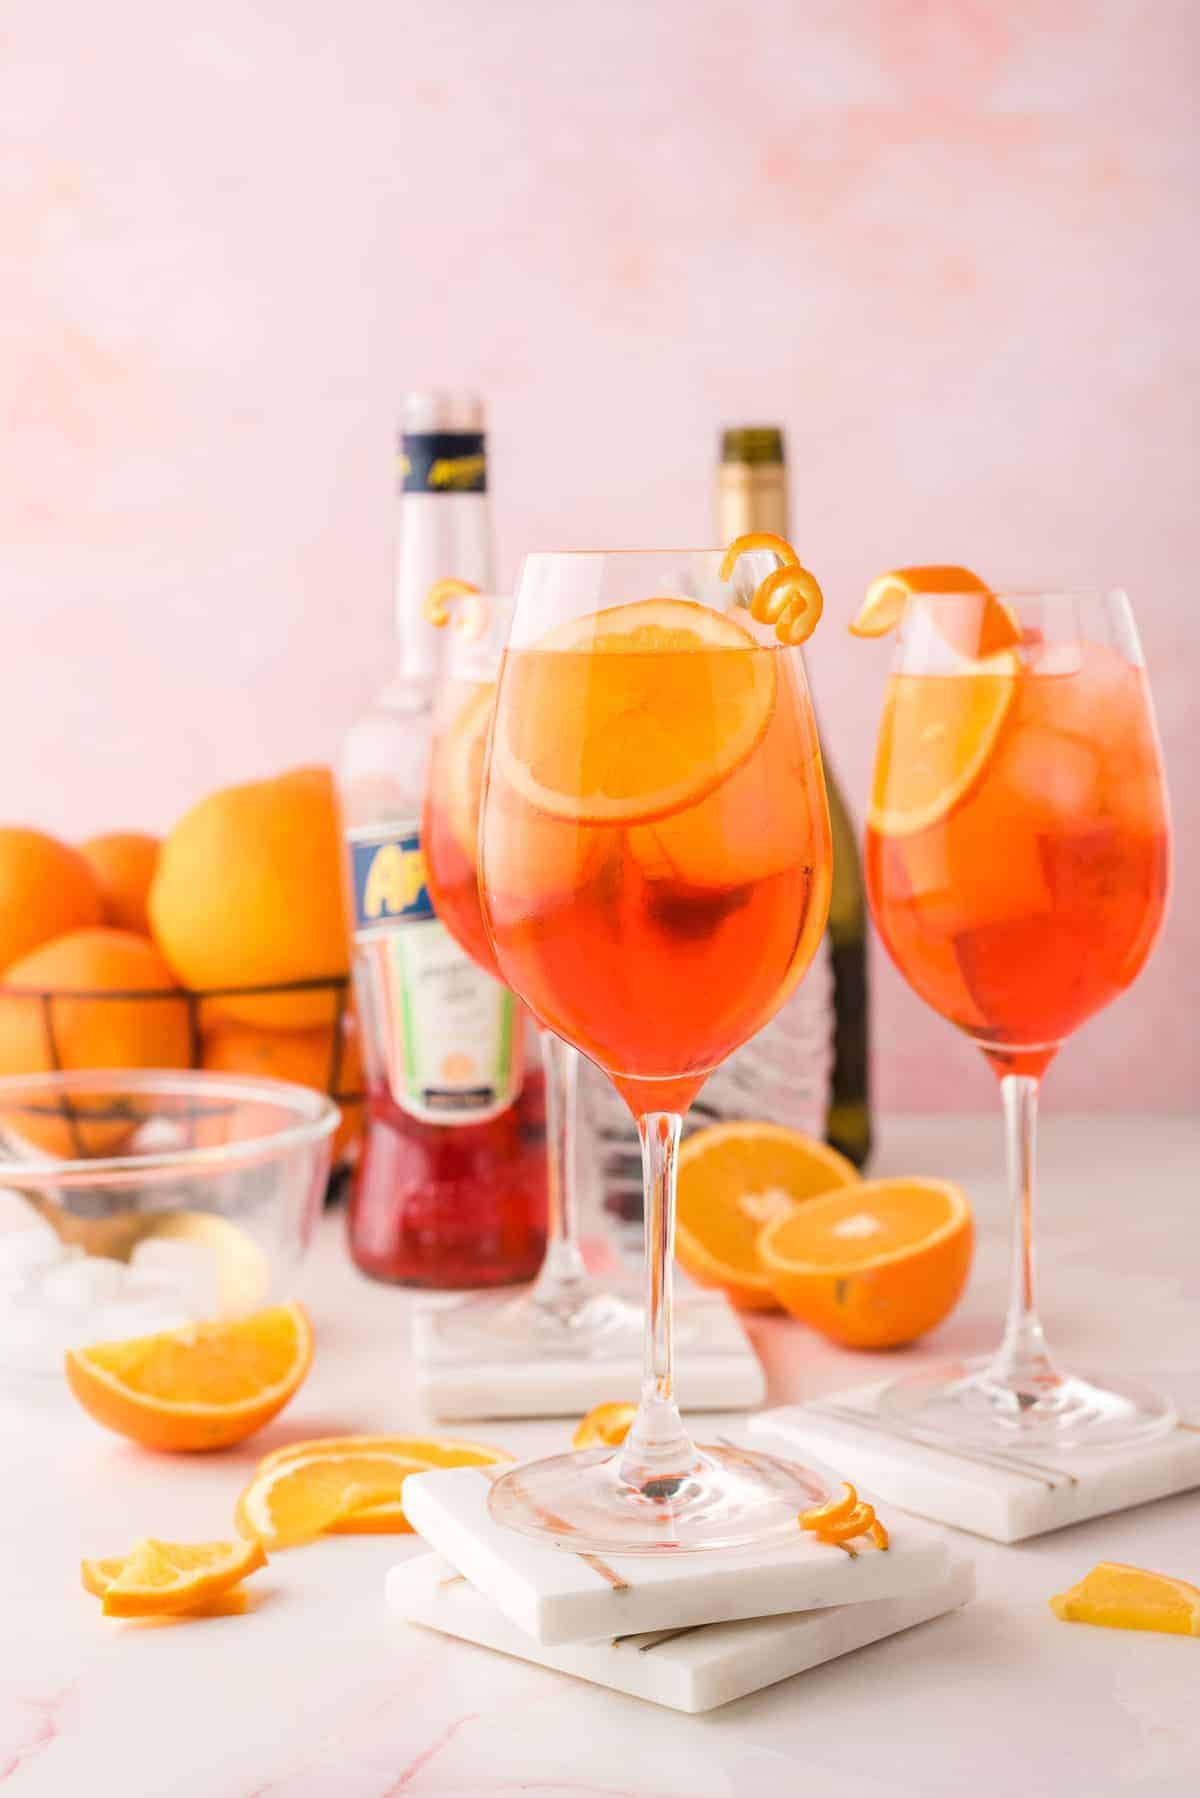 Thre glasses of aperol spritz, with the ingredients need to make it in the background.